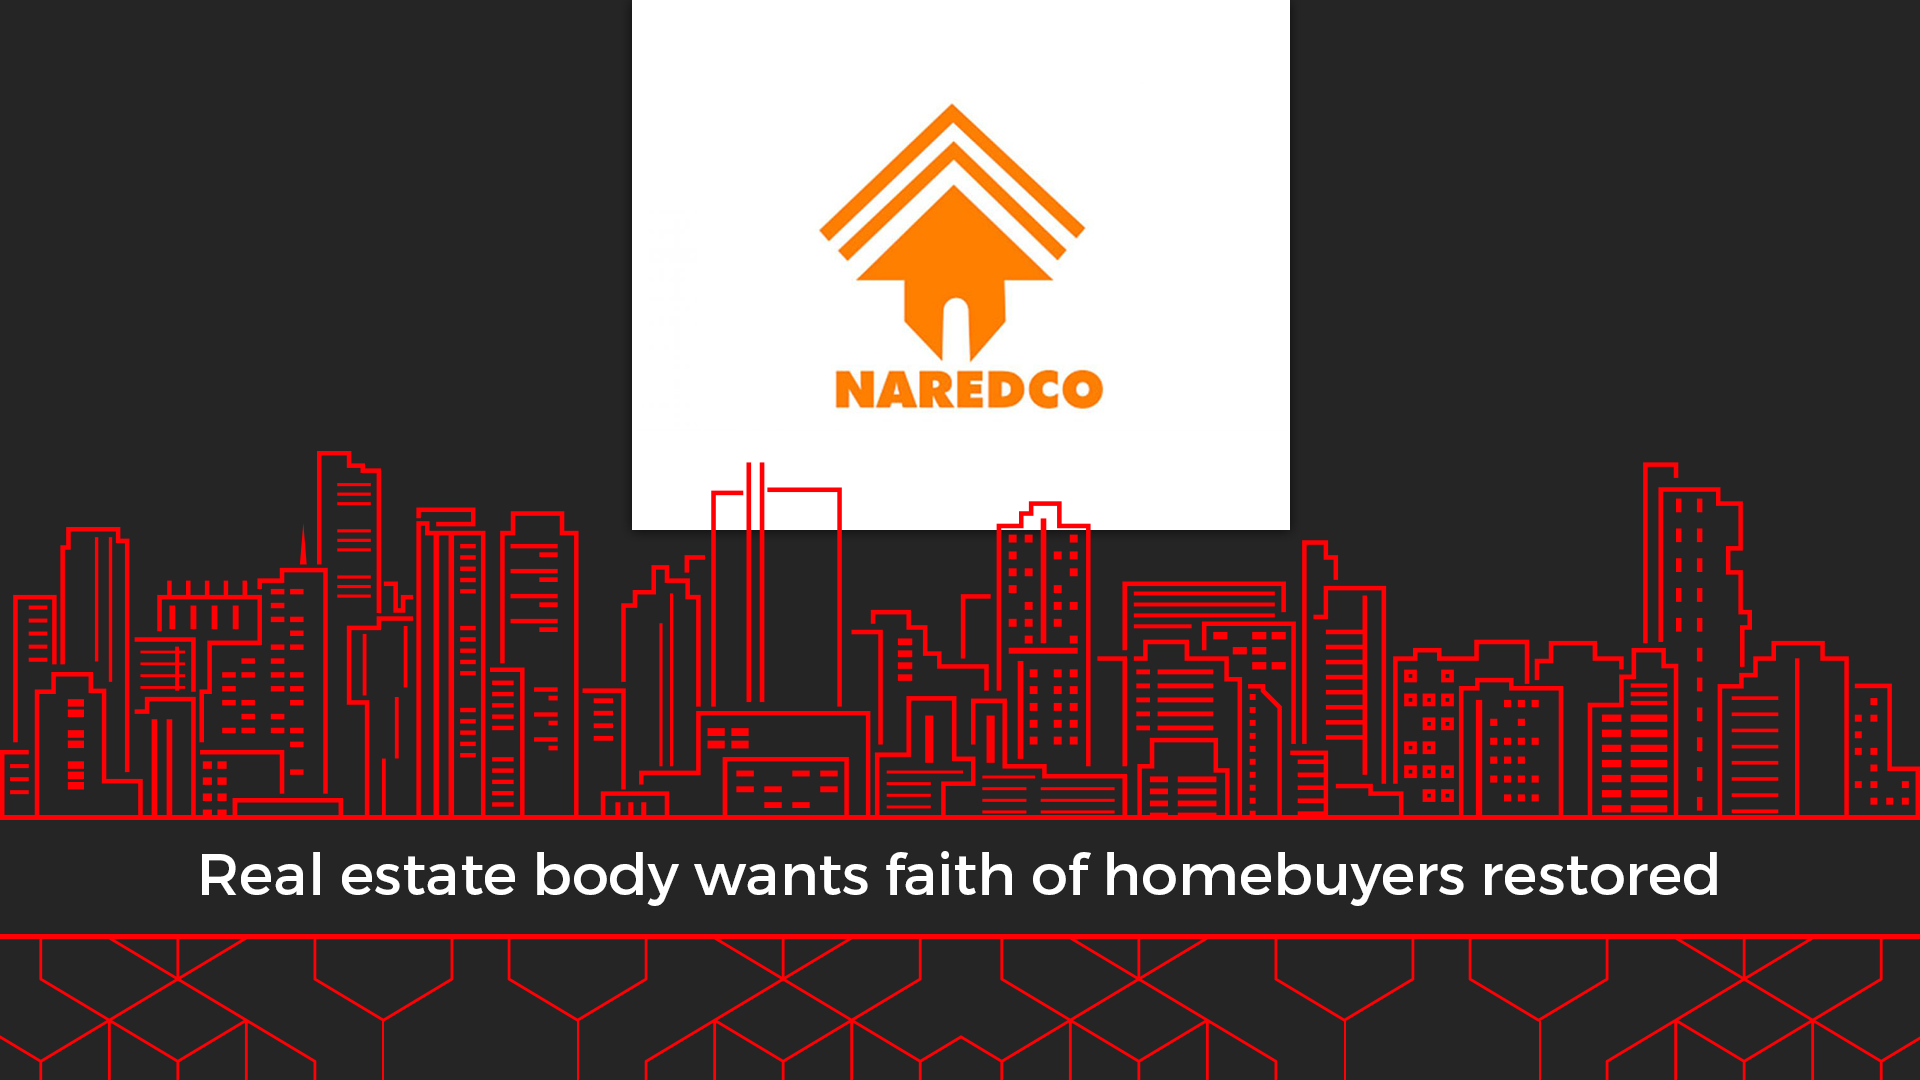 NAREDCO Doles Out Solutions To Revive The Real Estate Sector